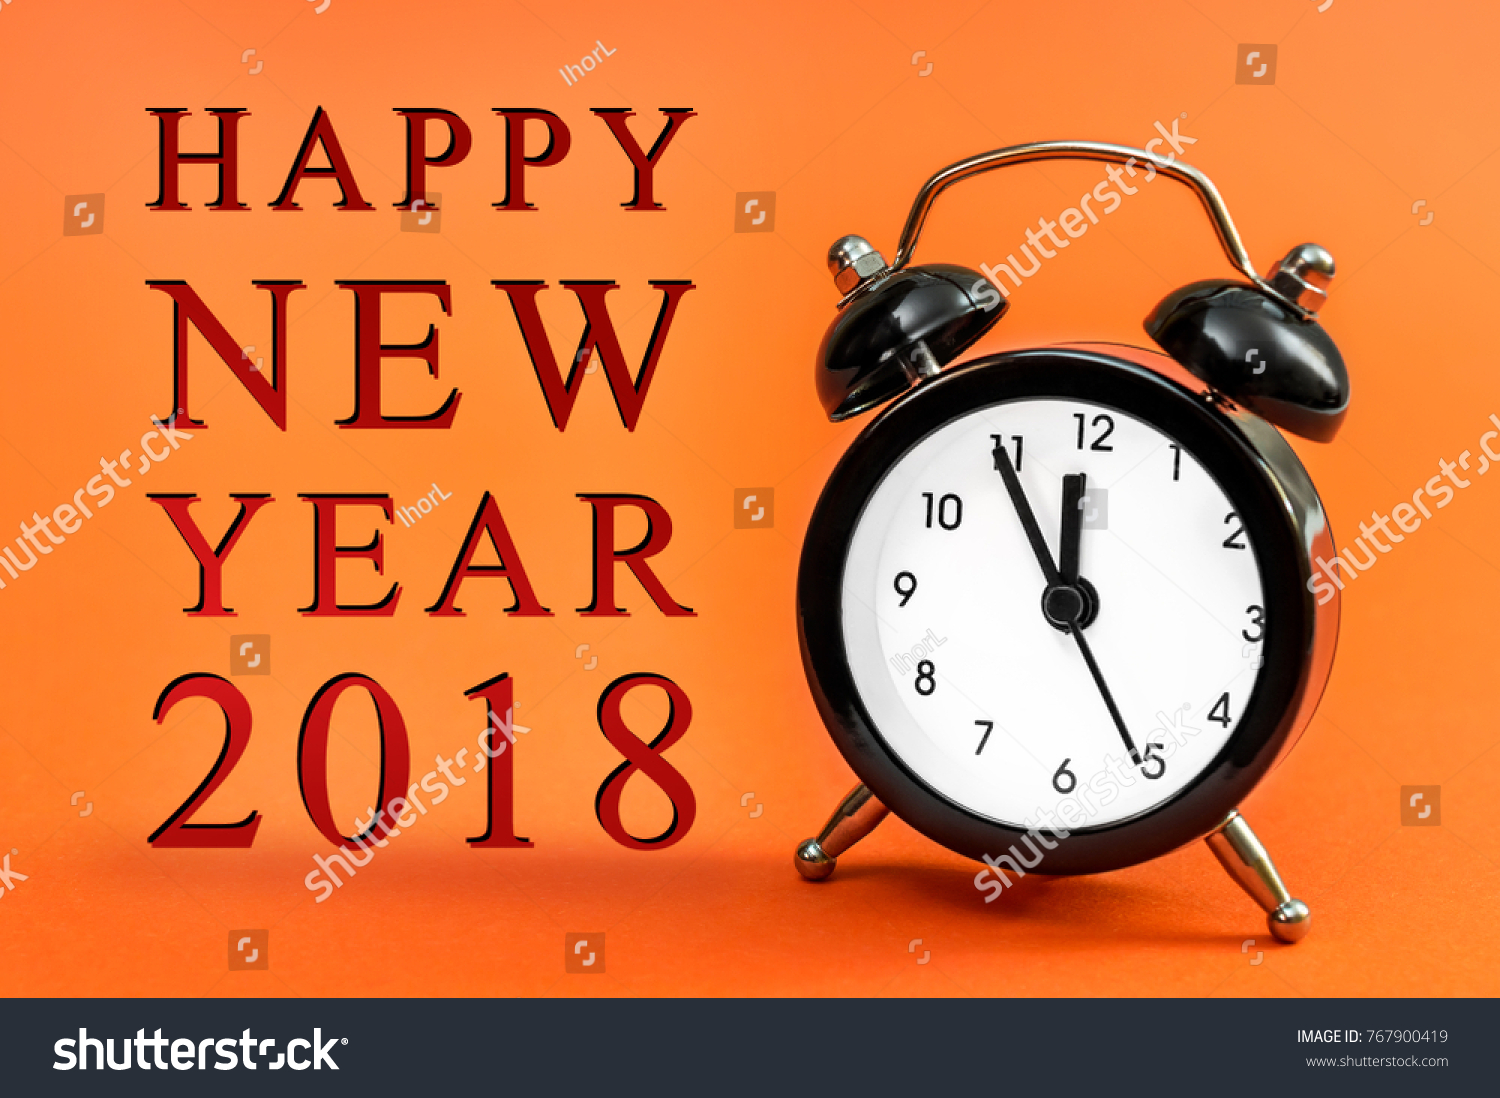 Greeting happy new year 2018 clock stock photo 767900419 greeting of happy new year 2018 with clock on bright orange background new year concept kristyandbryce Image collections